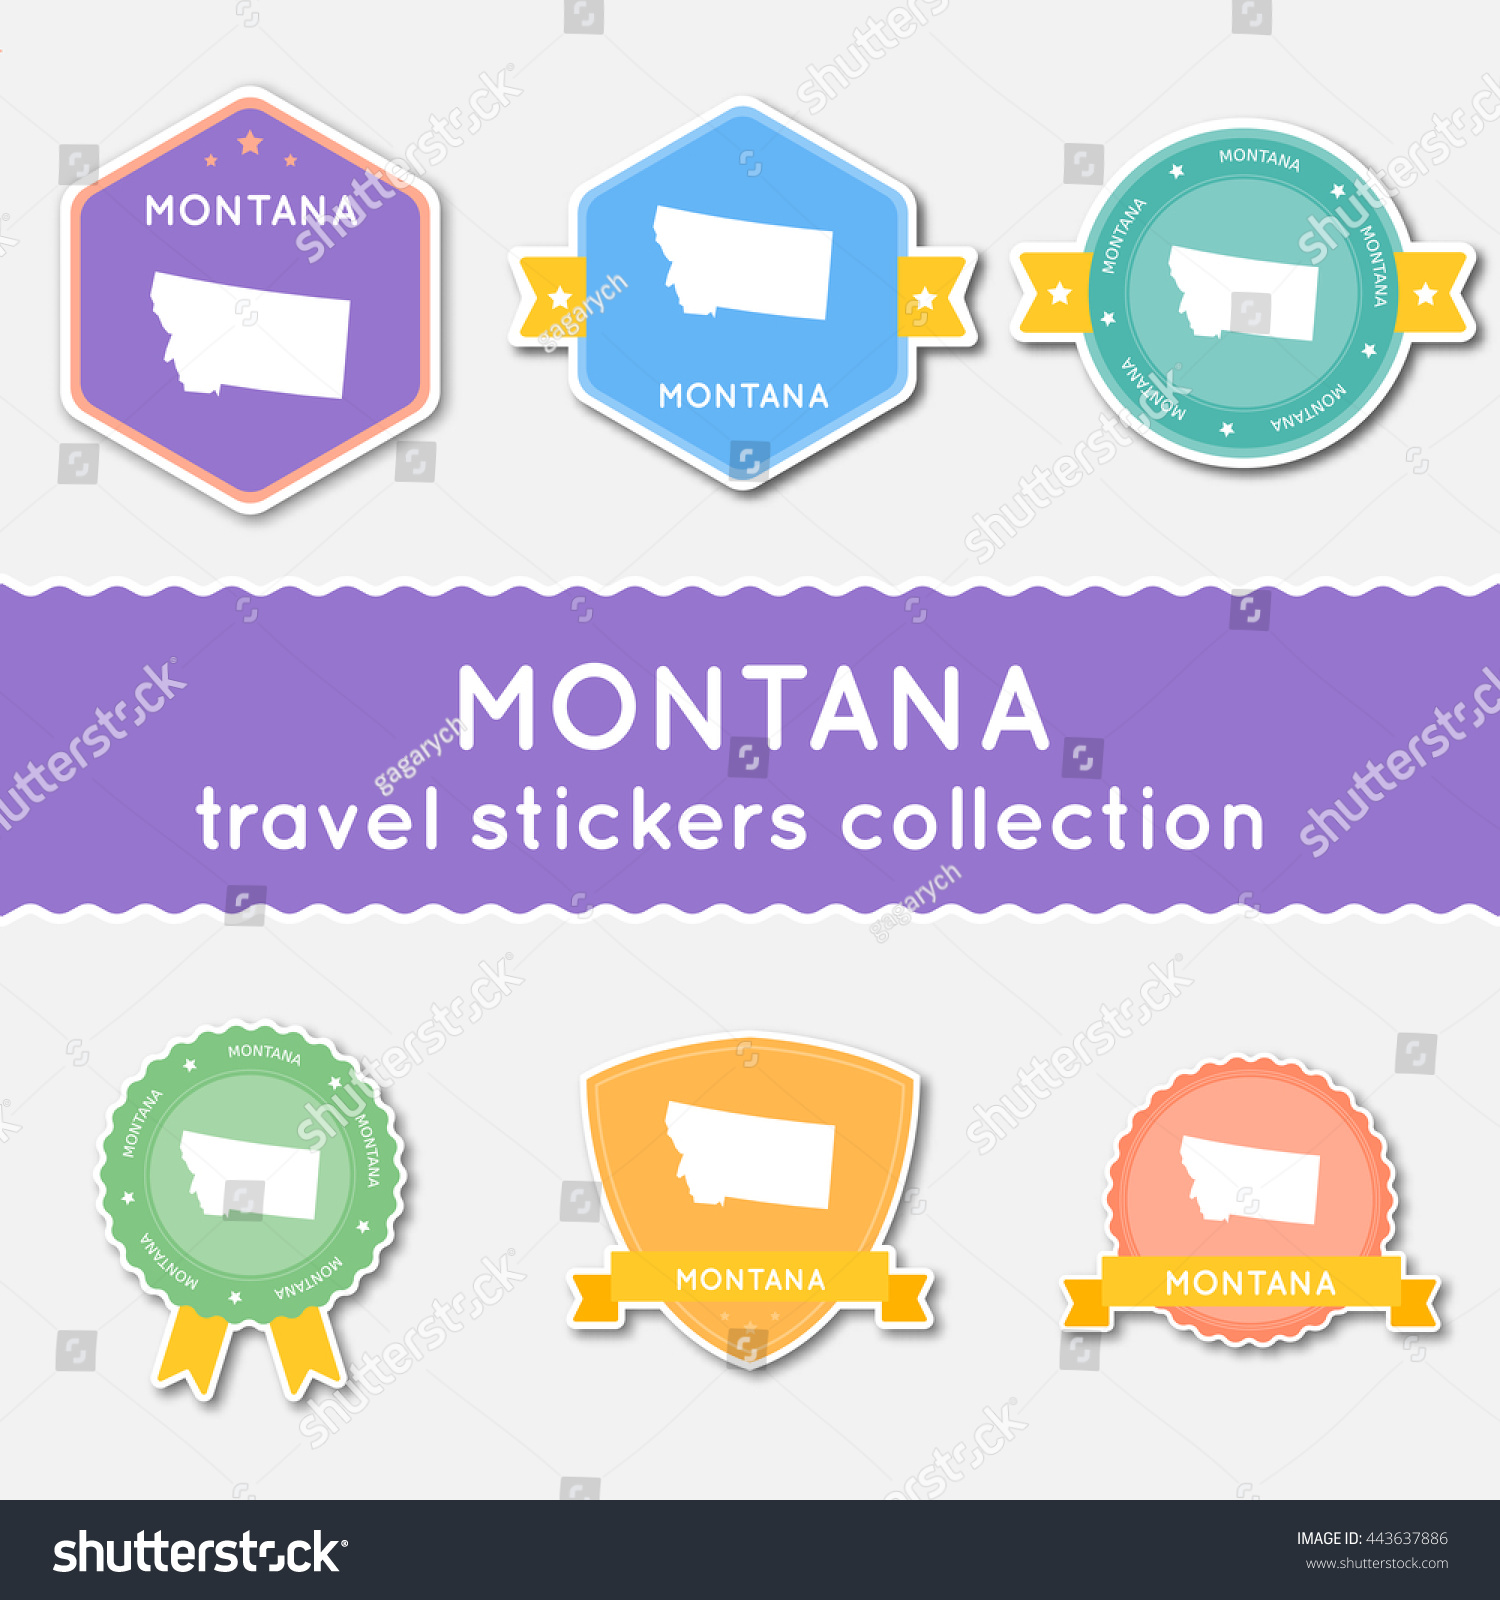 Montana Travel Stickers Collection Big Set Of Stickers With Us – Montana Travel Map